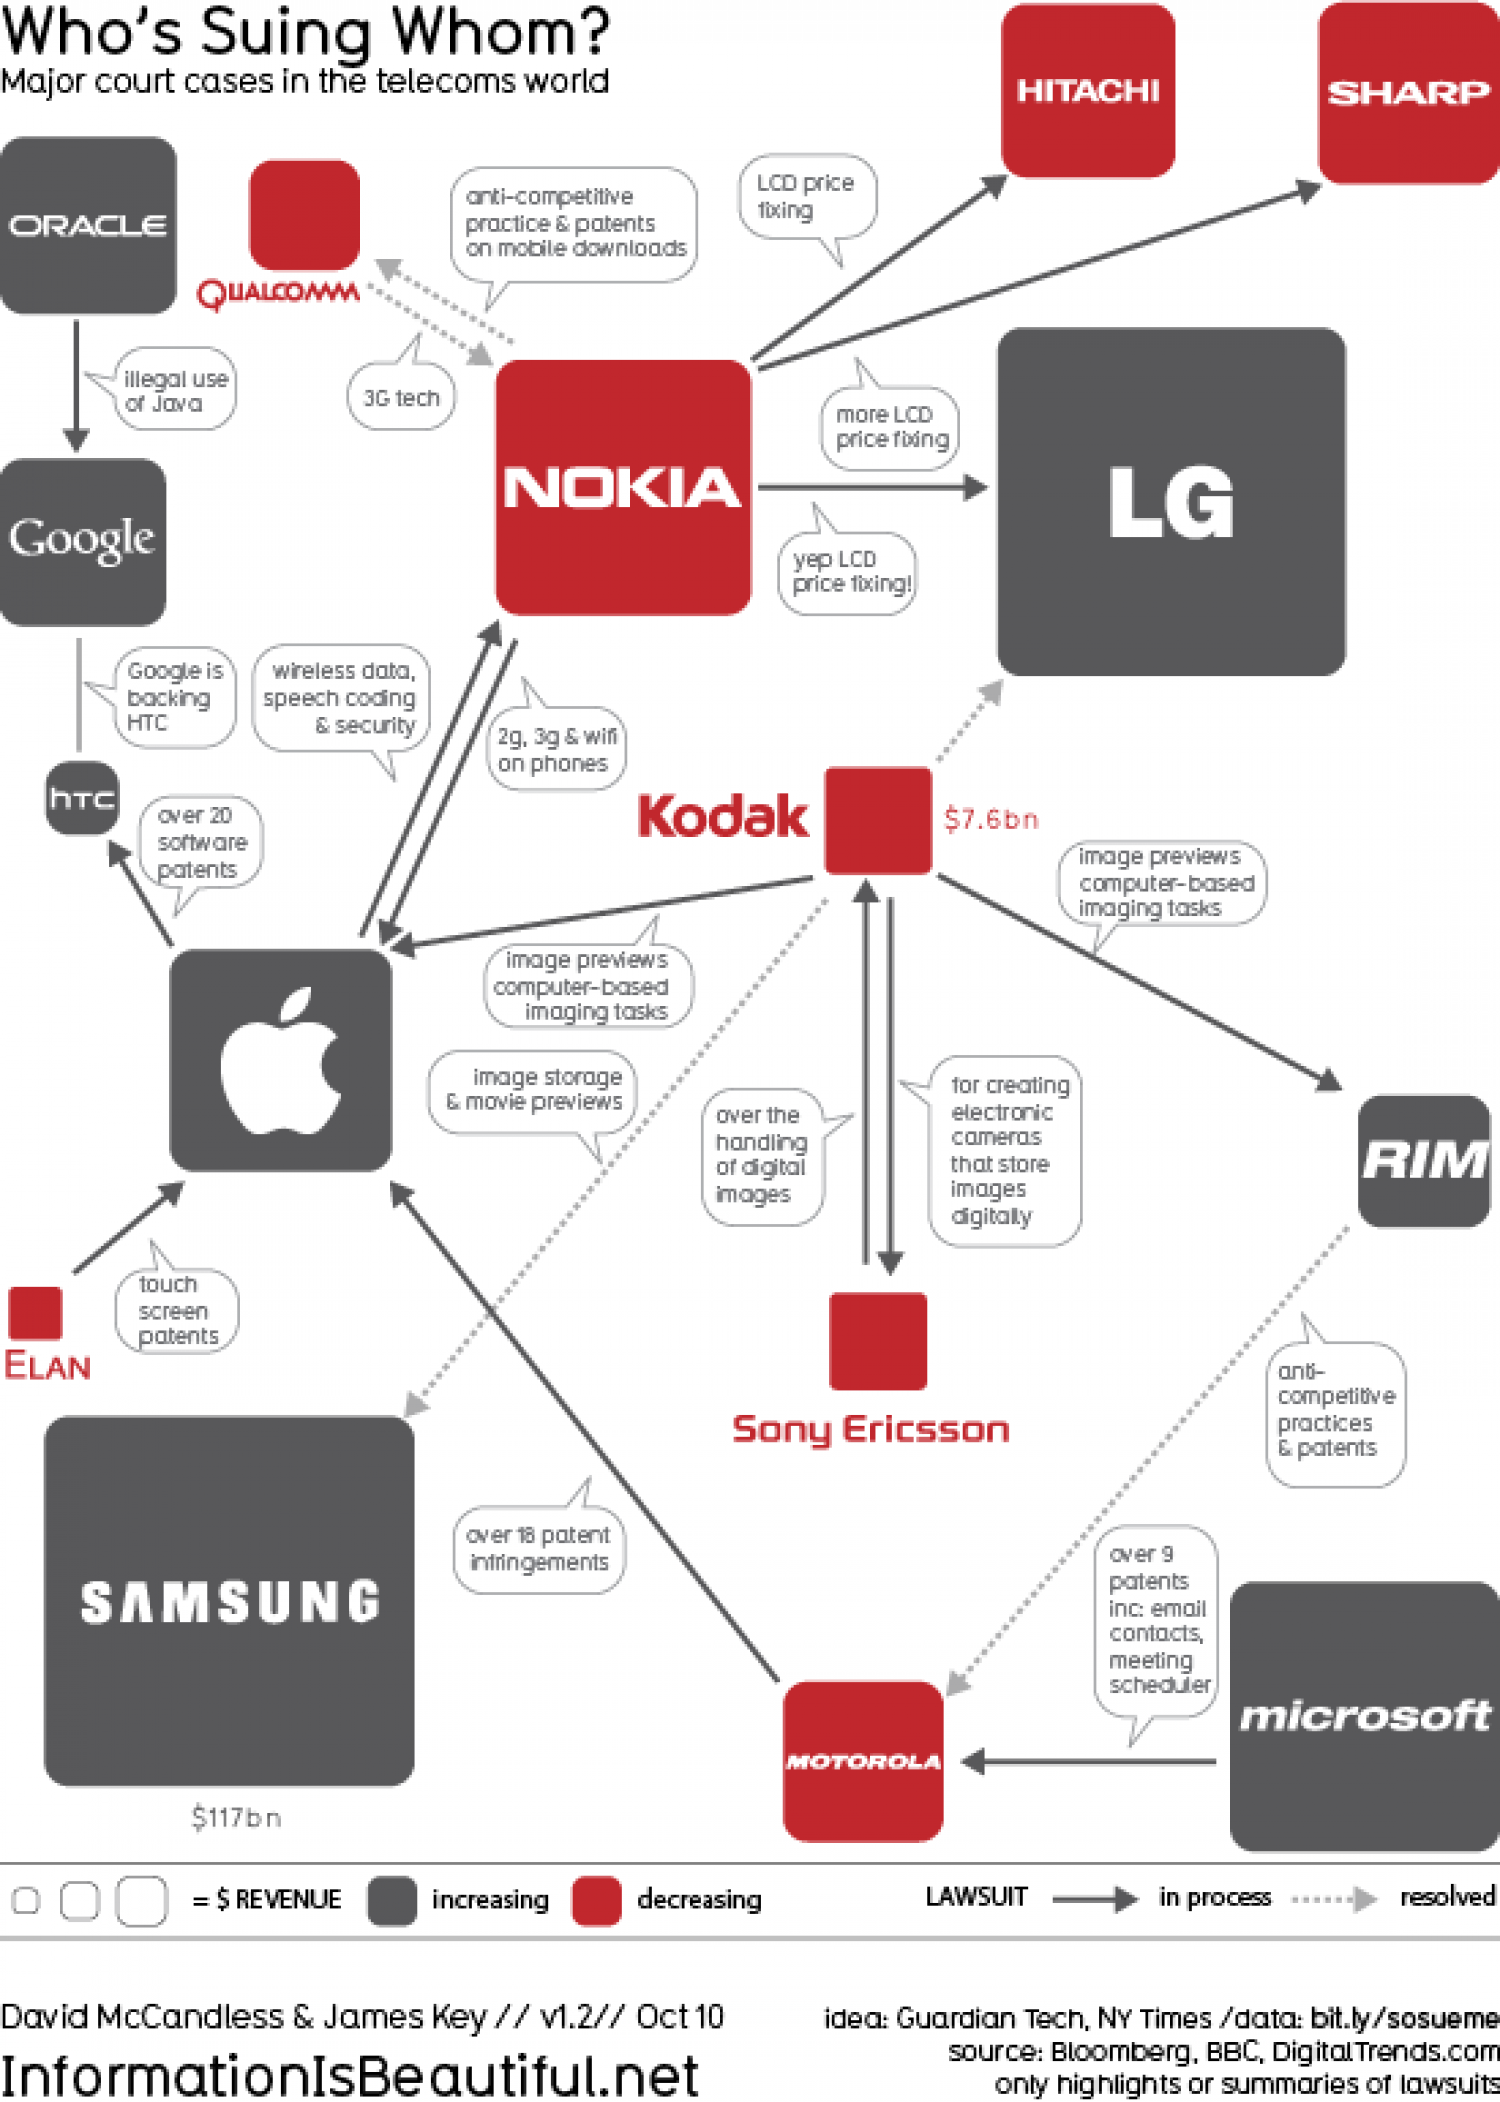 Who's Suing Whom? Infographic